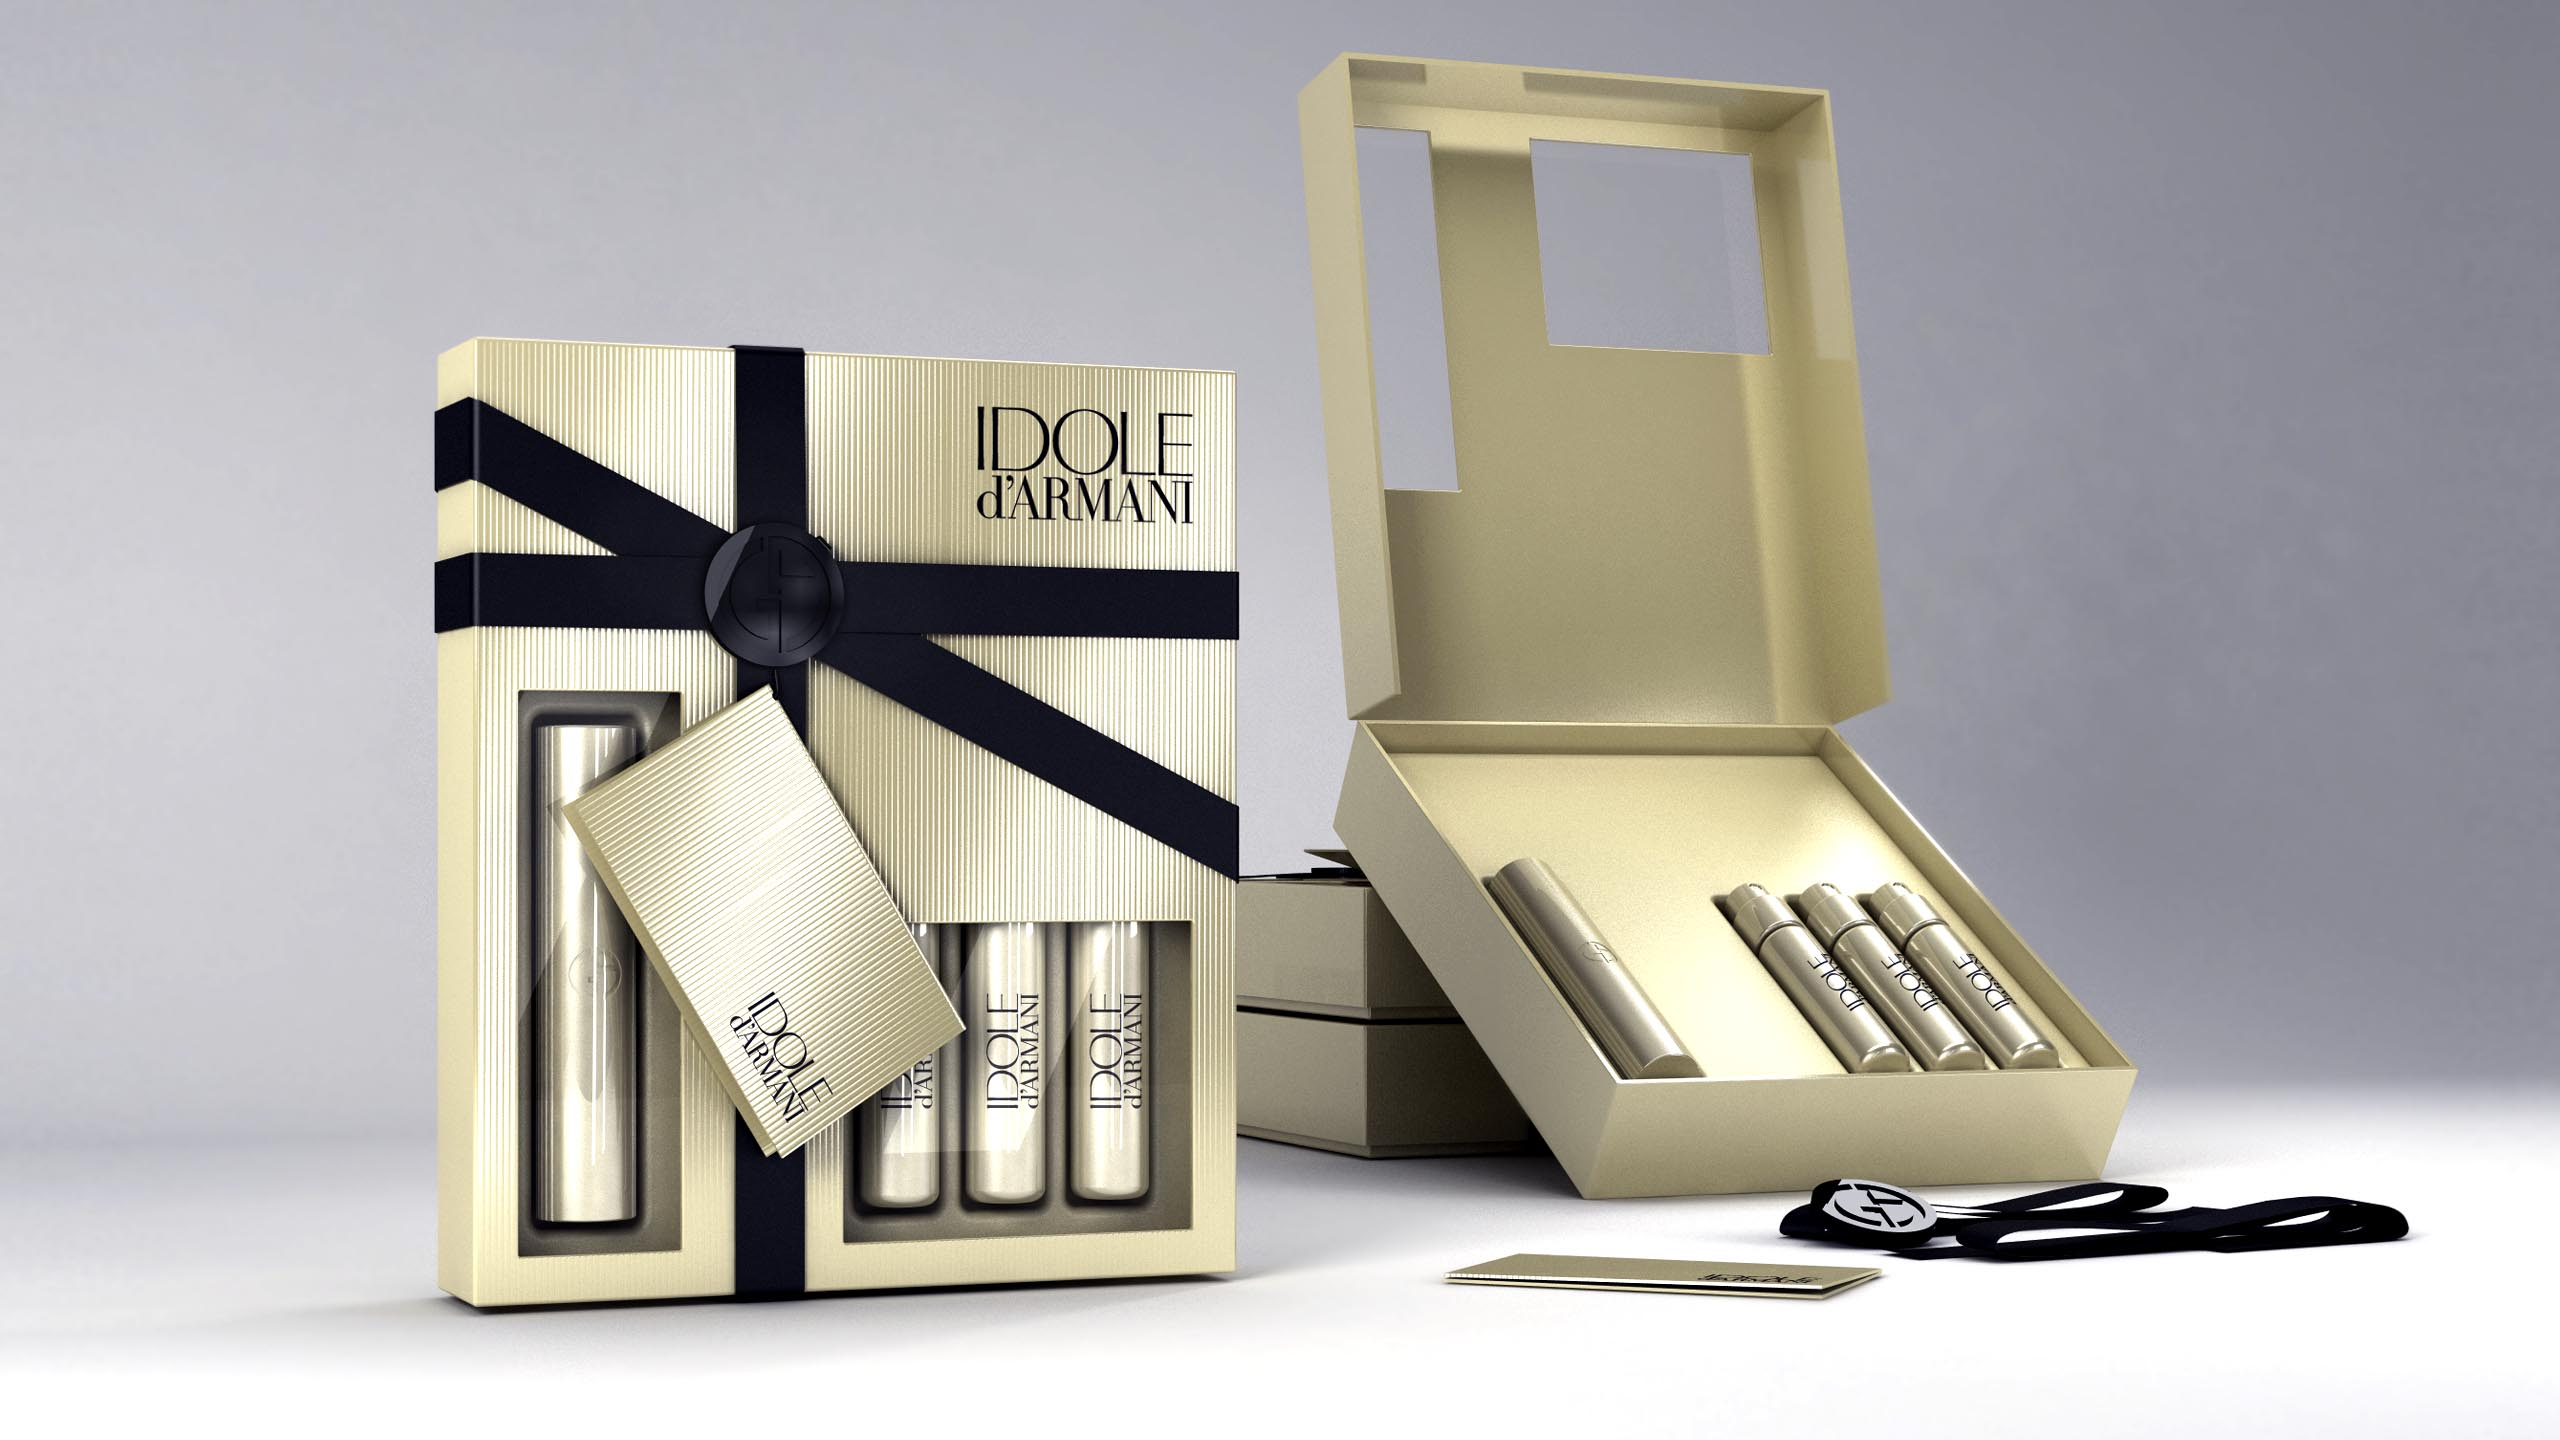 packaging study for Armani Idole